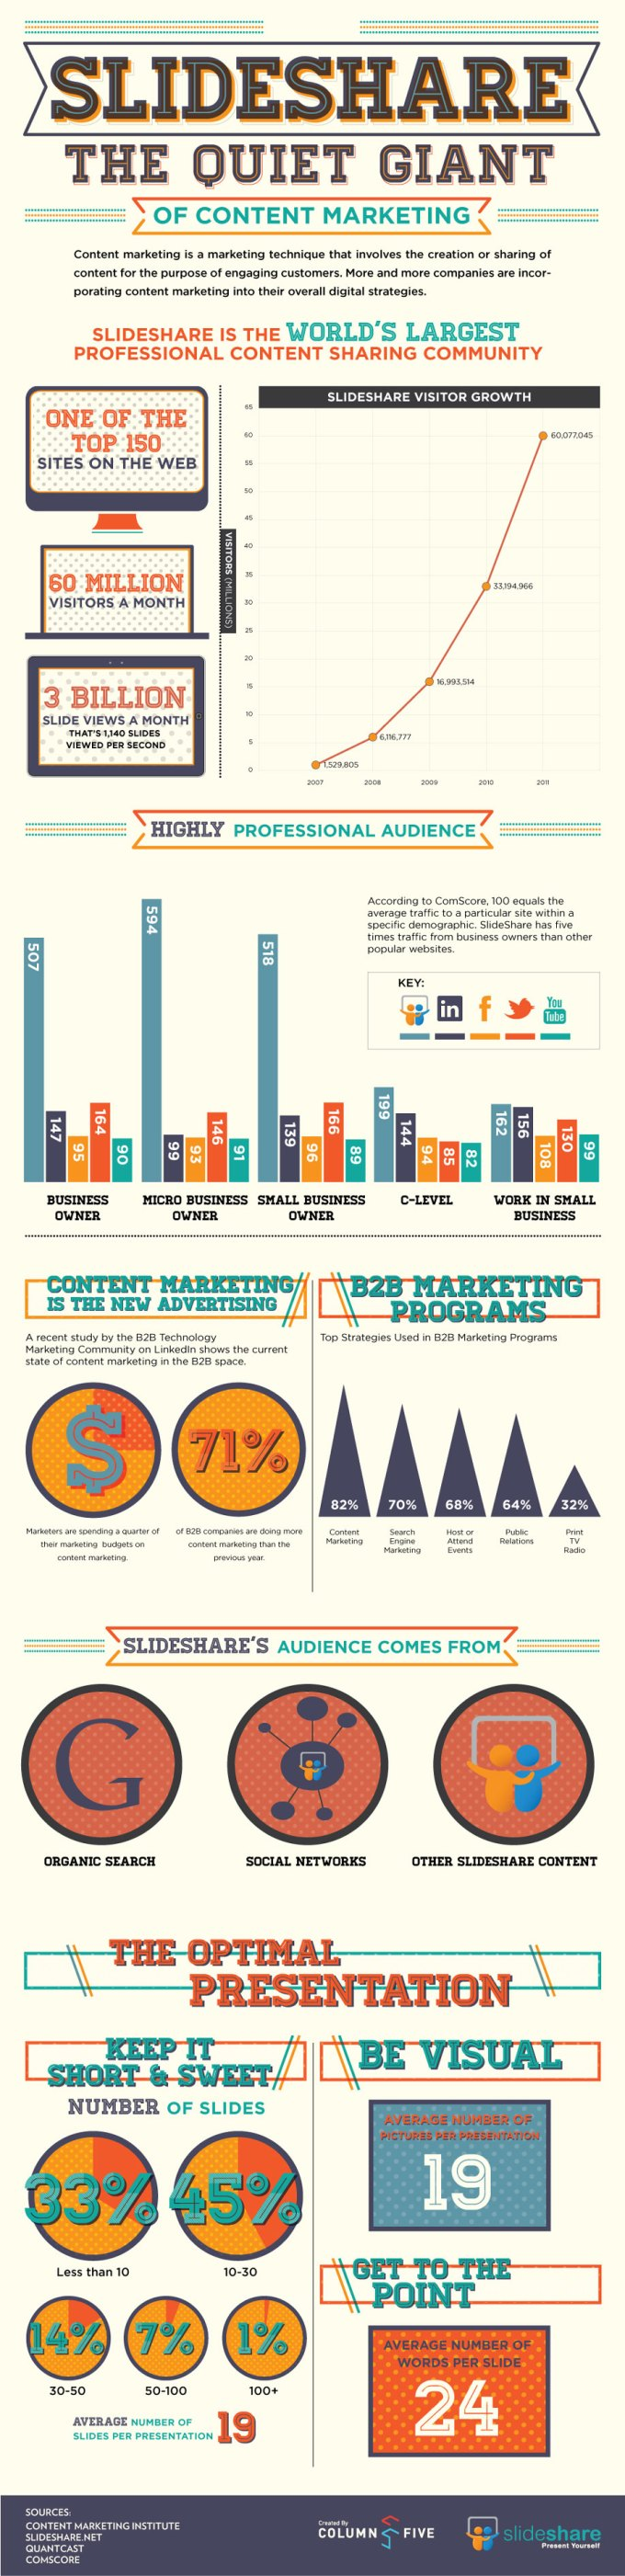 slideshare-giant-of-content-marketing